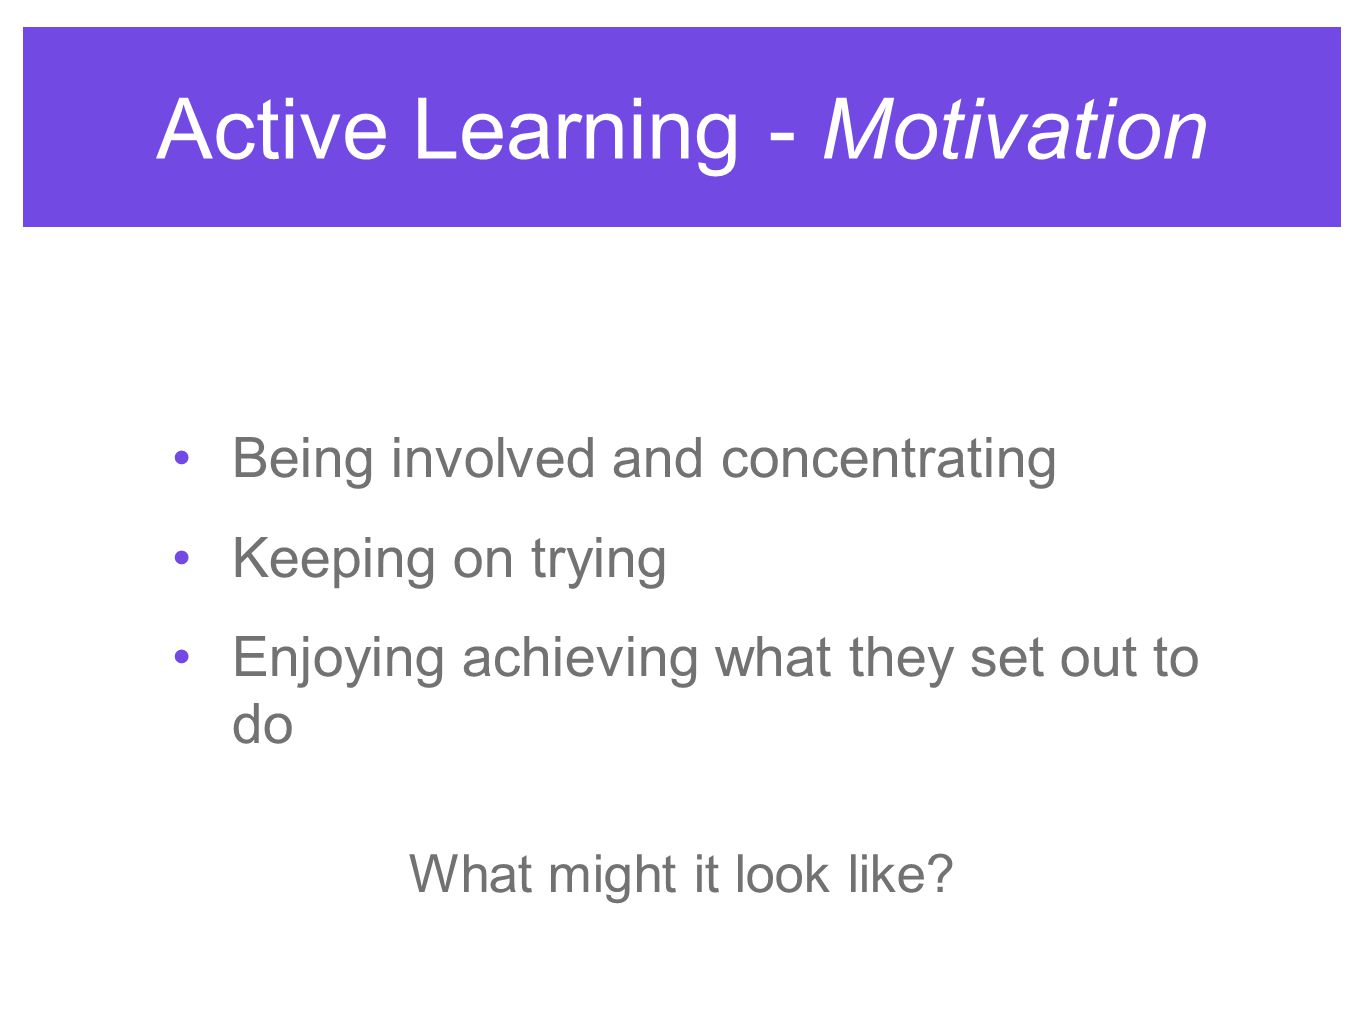 Active Learning - Motivation Being involved and concentrating Keeping on trying Enjoying achieving what they set out to do What might it look like?